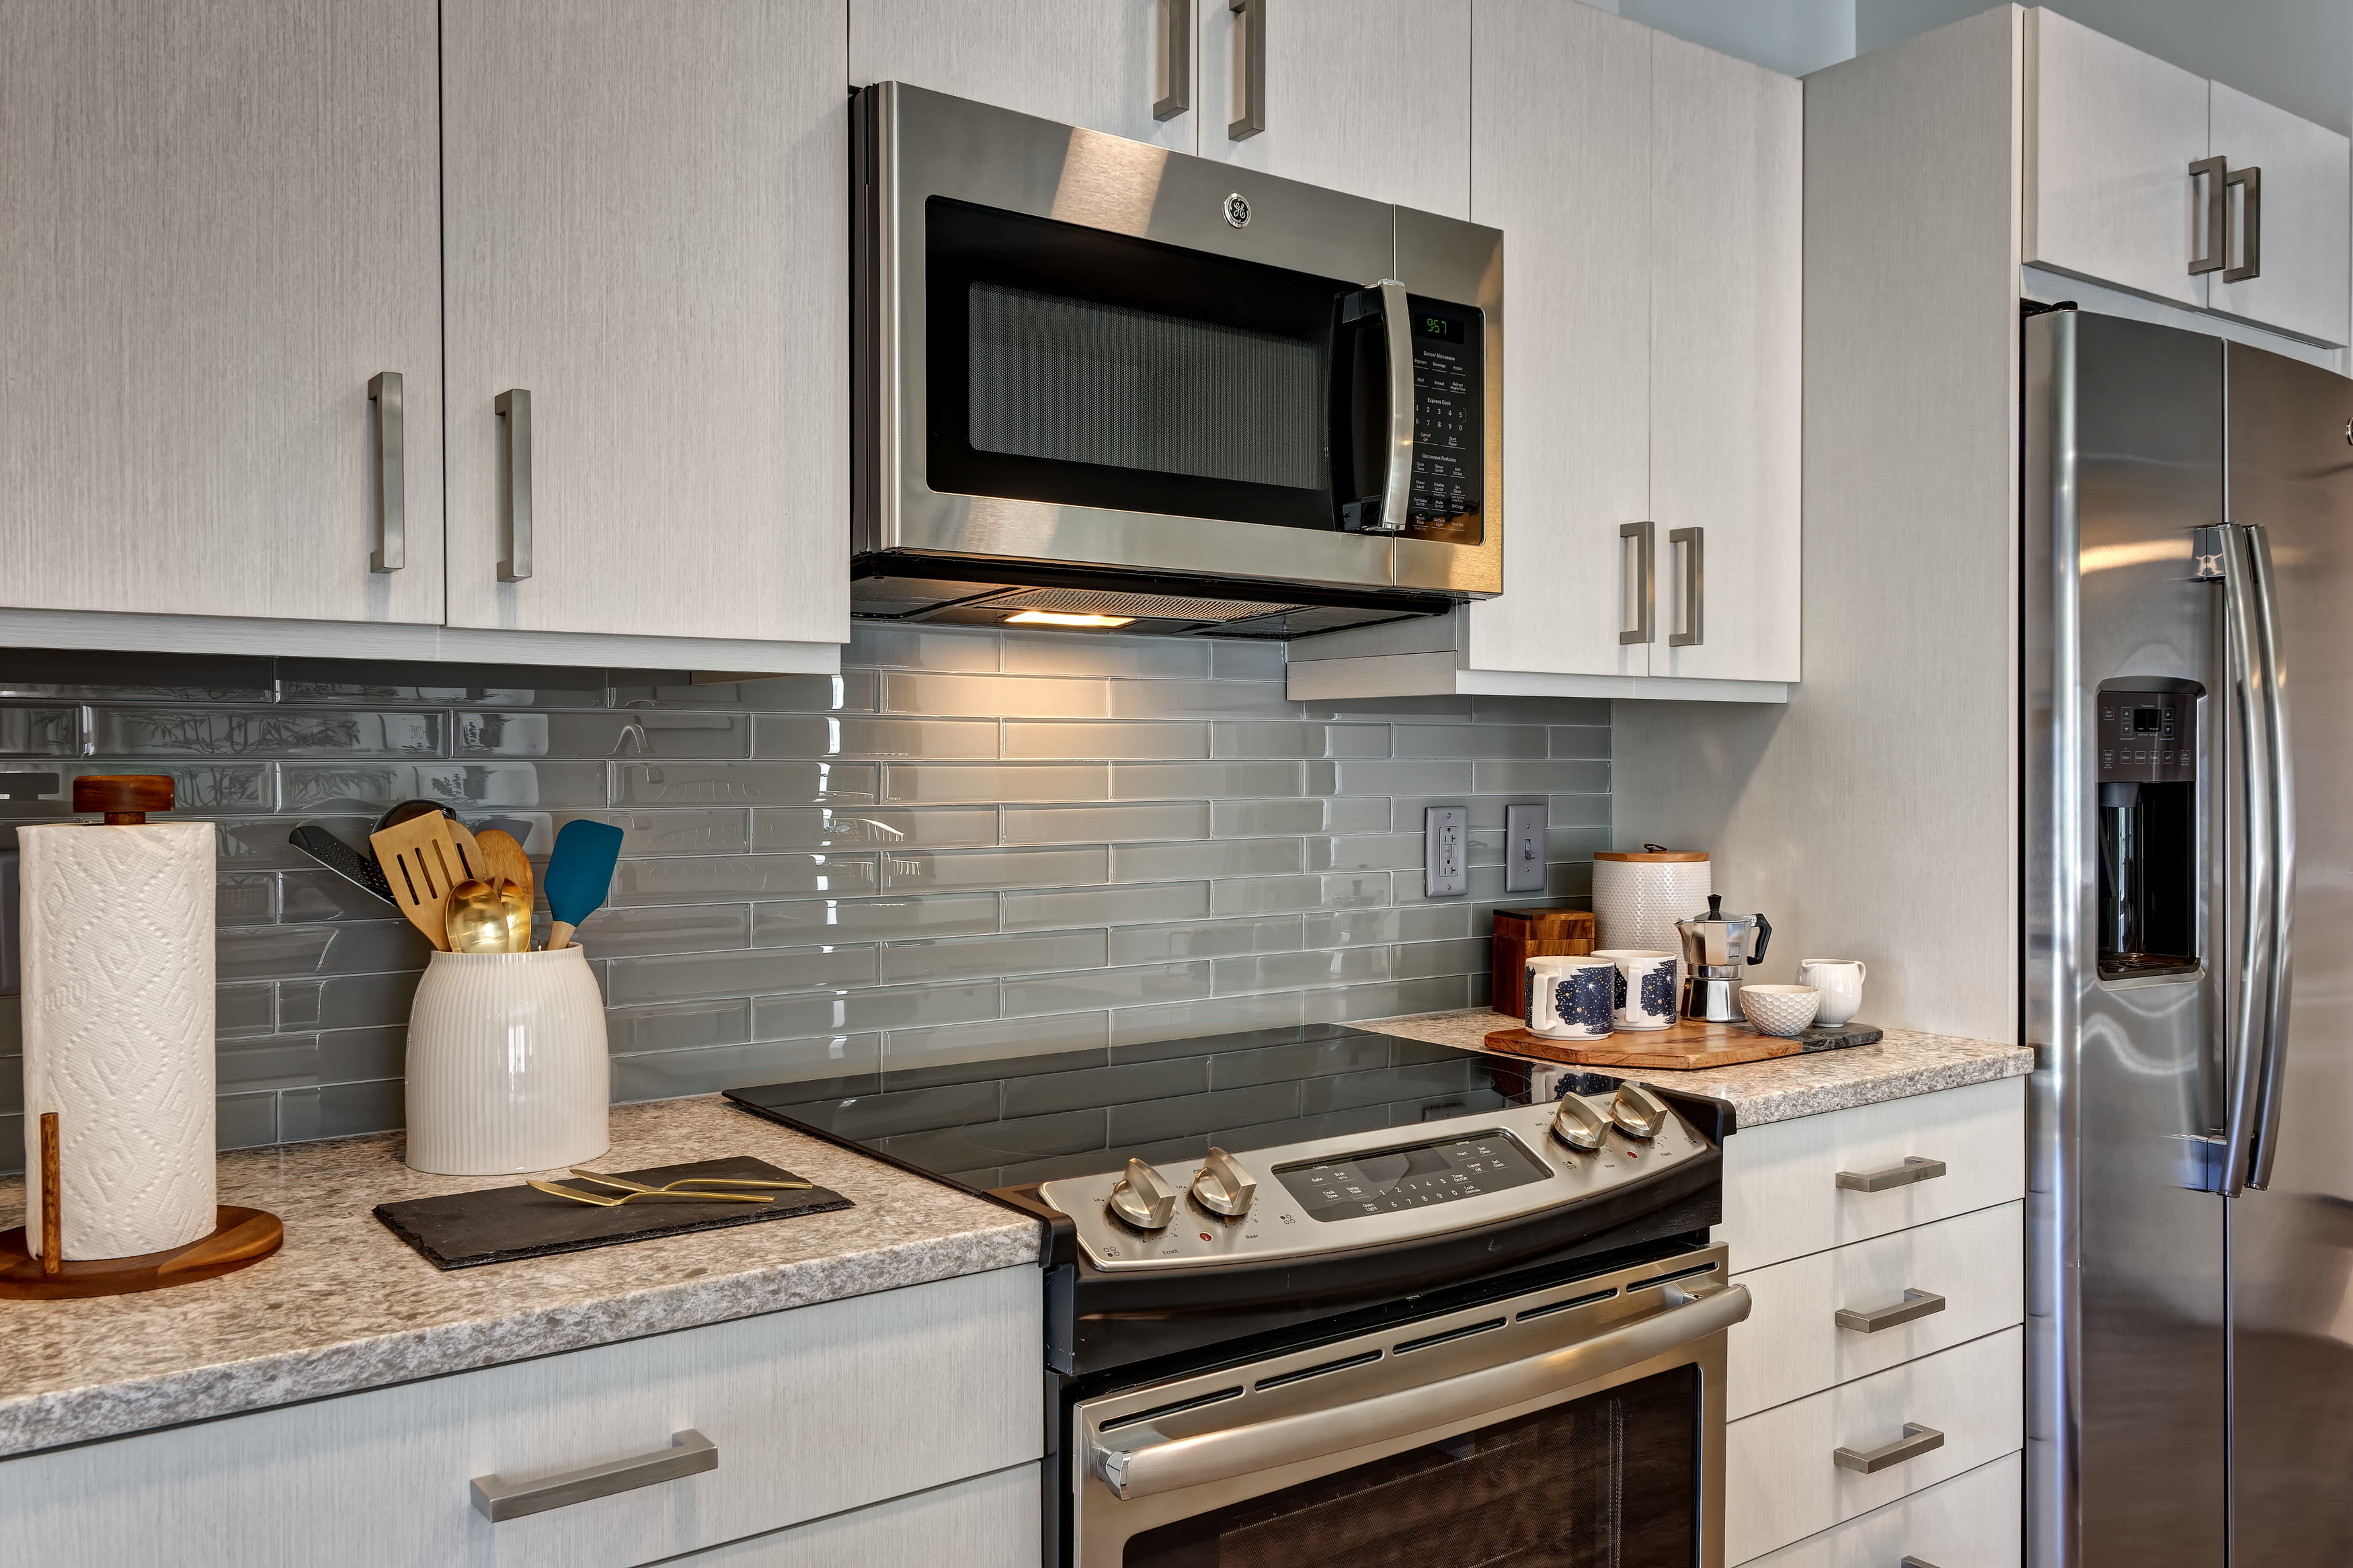 Kitchen with stainless-steel appliances and spacious counters at Vela on the Park in Stamford, CT